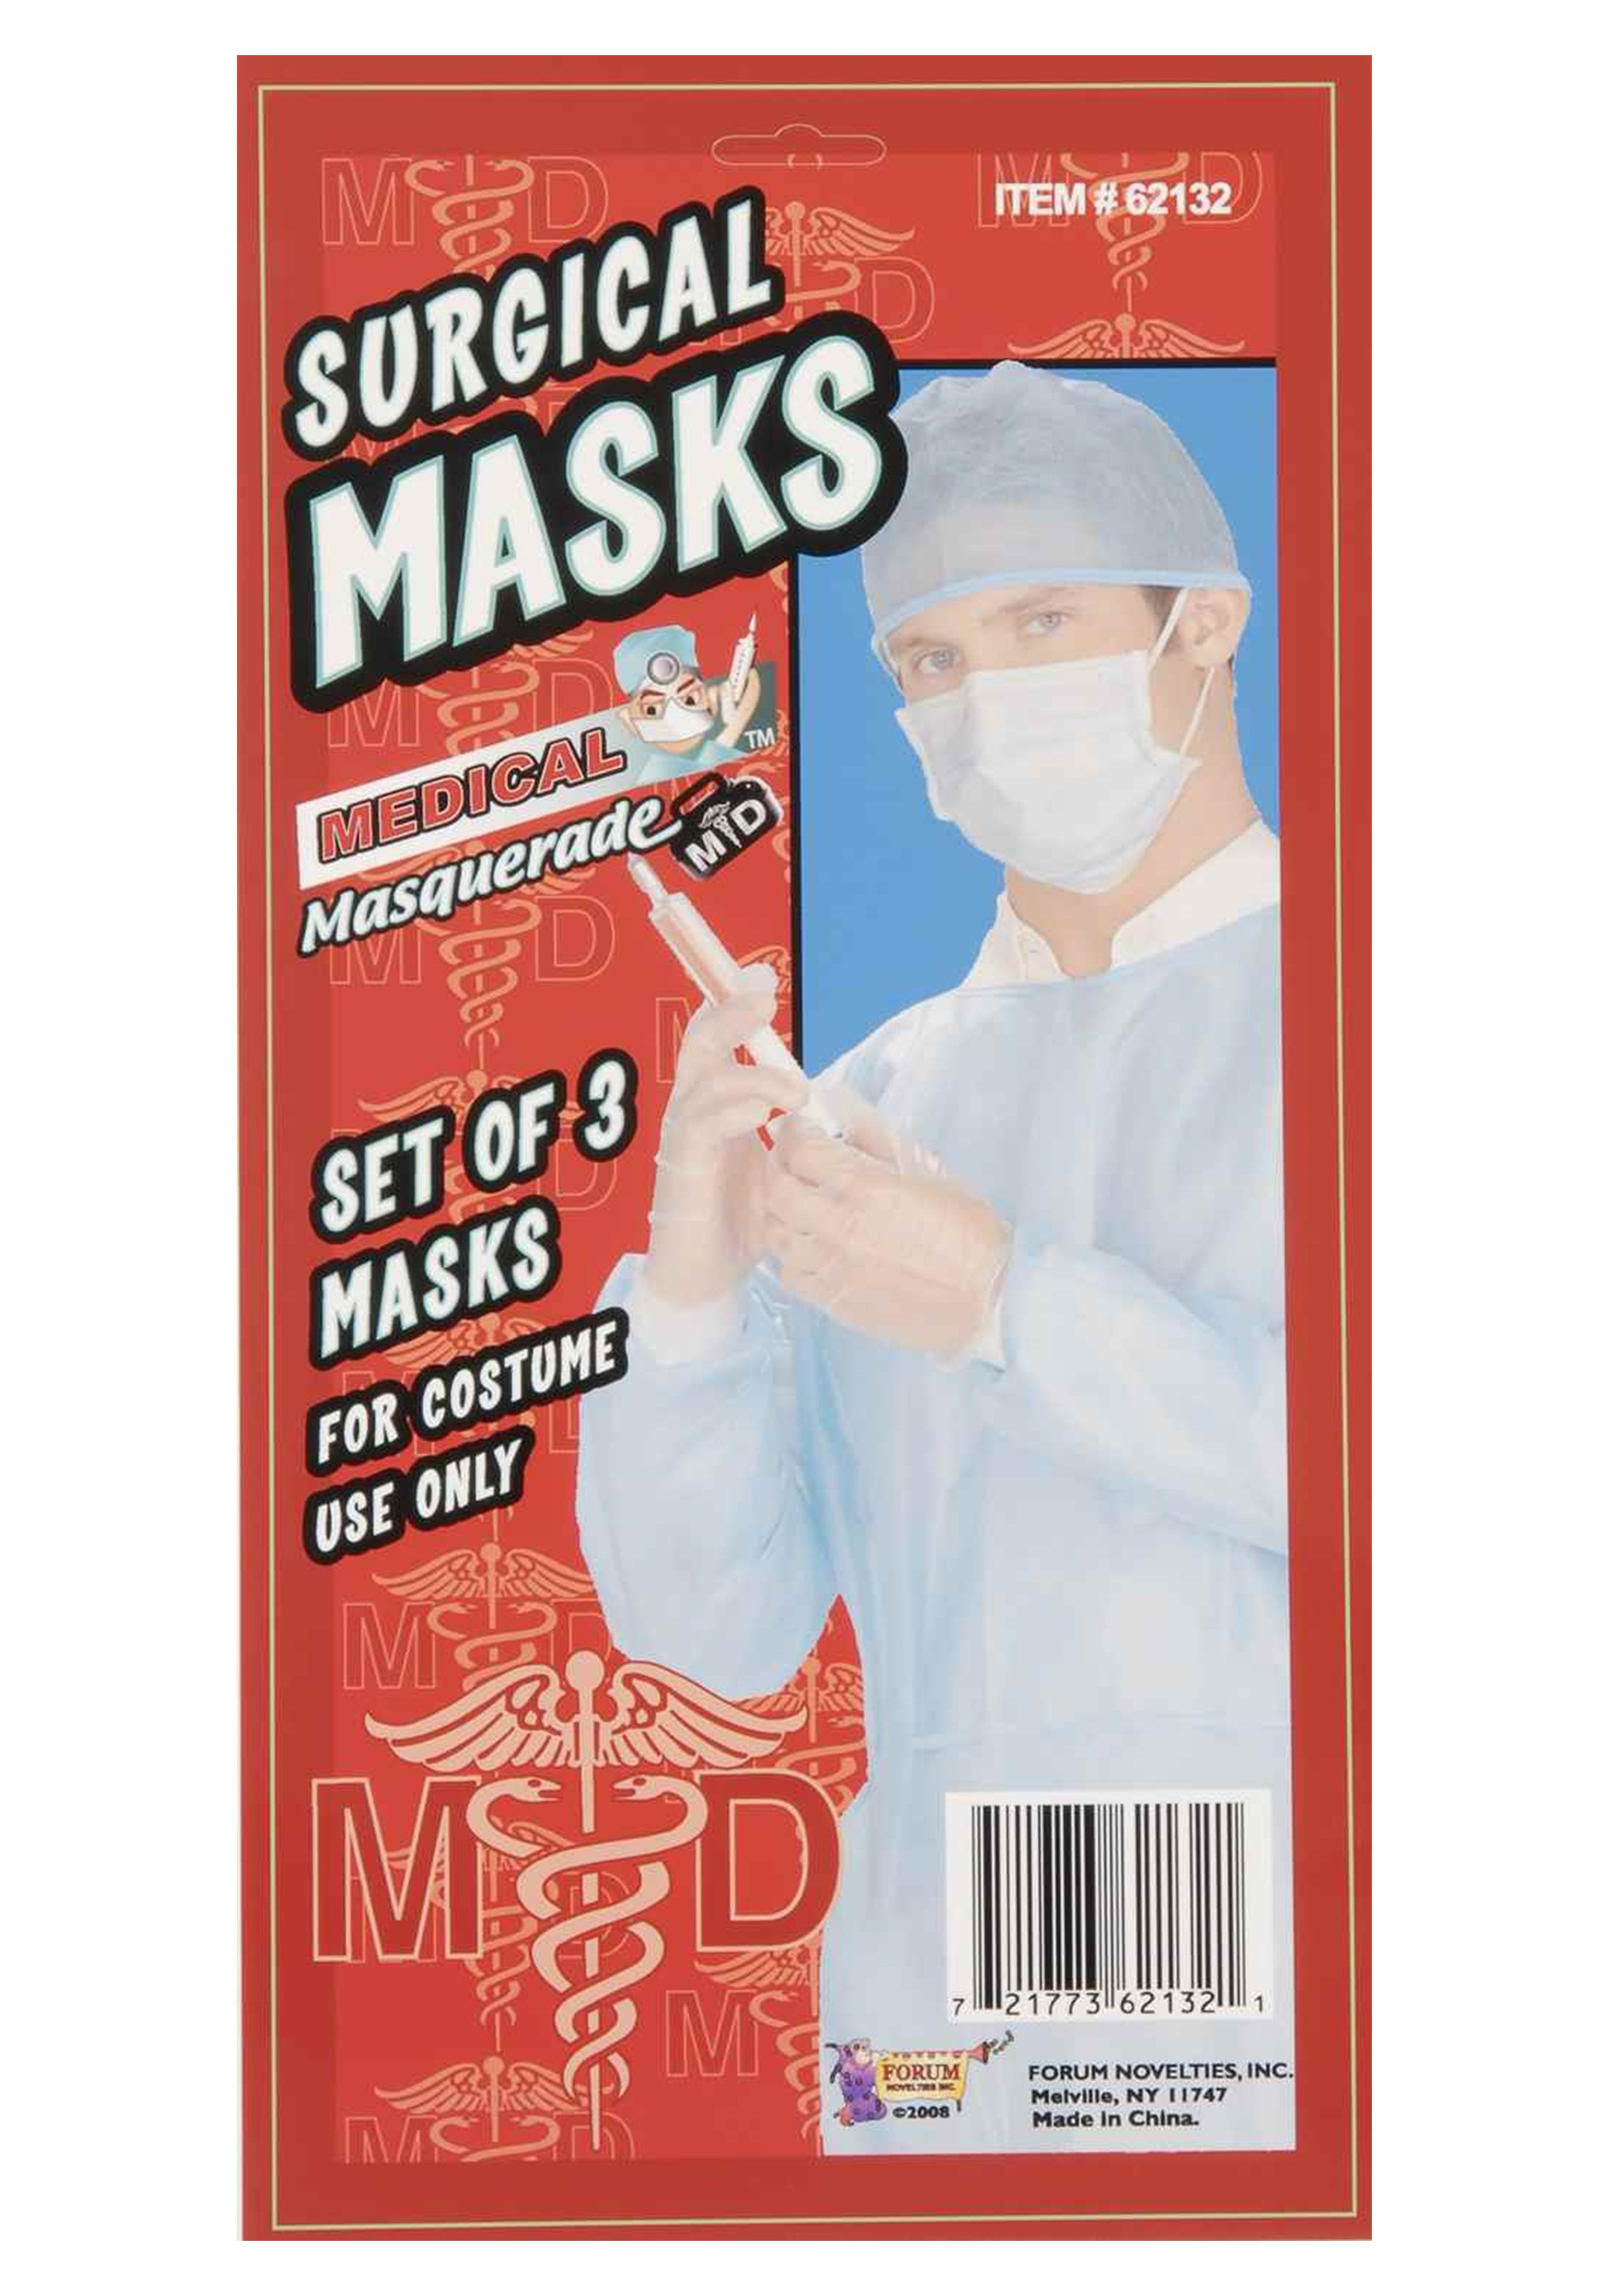 Doctor Surgical Mask